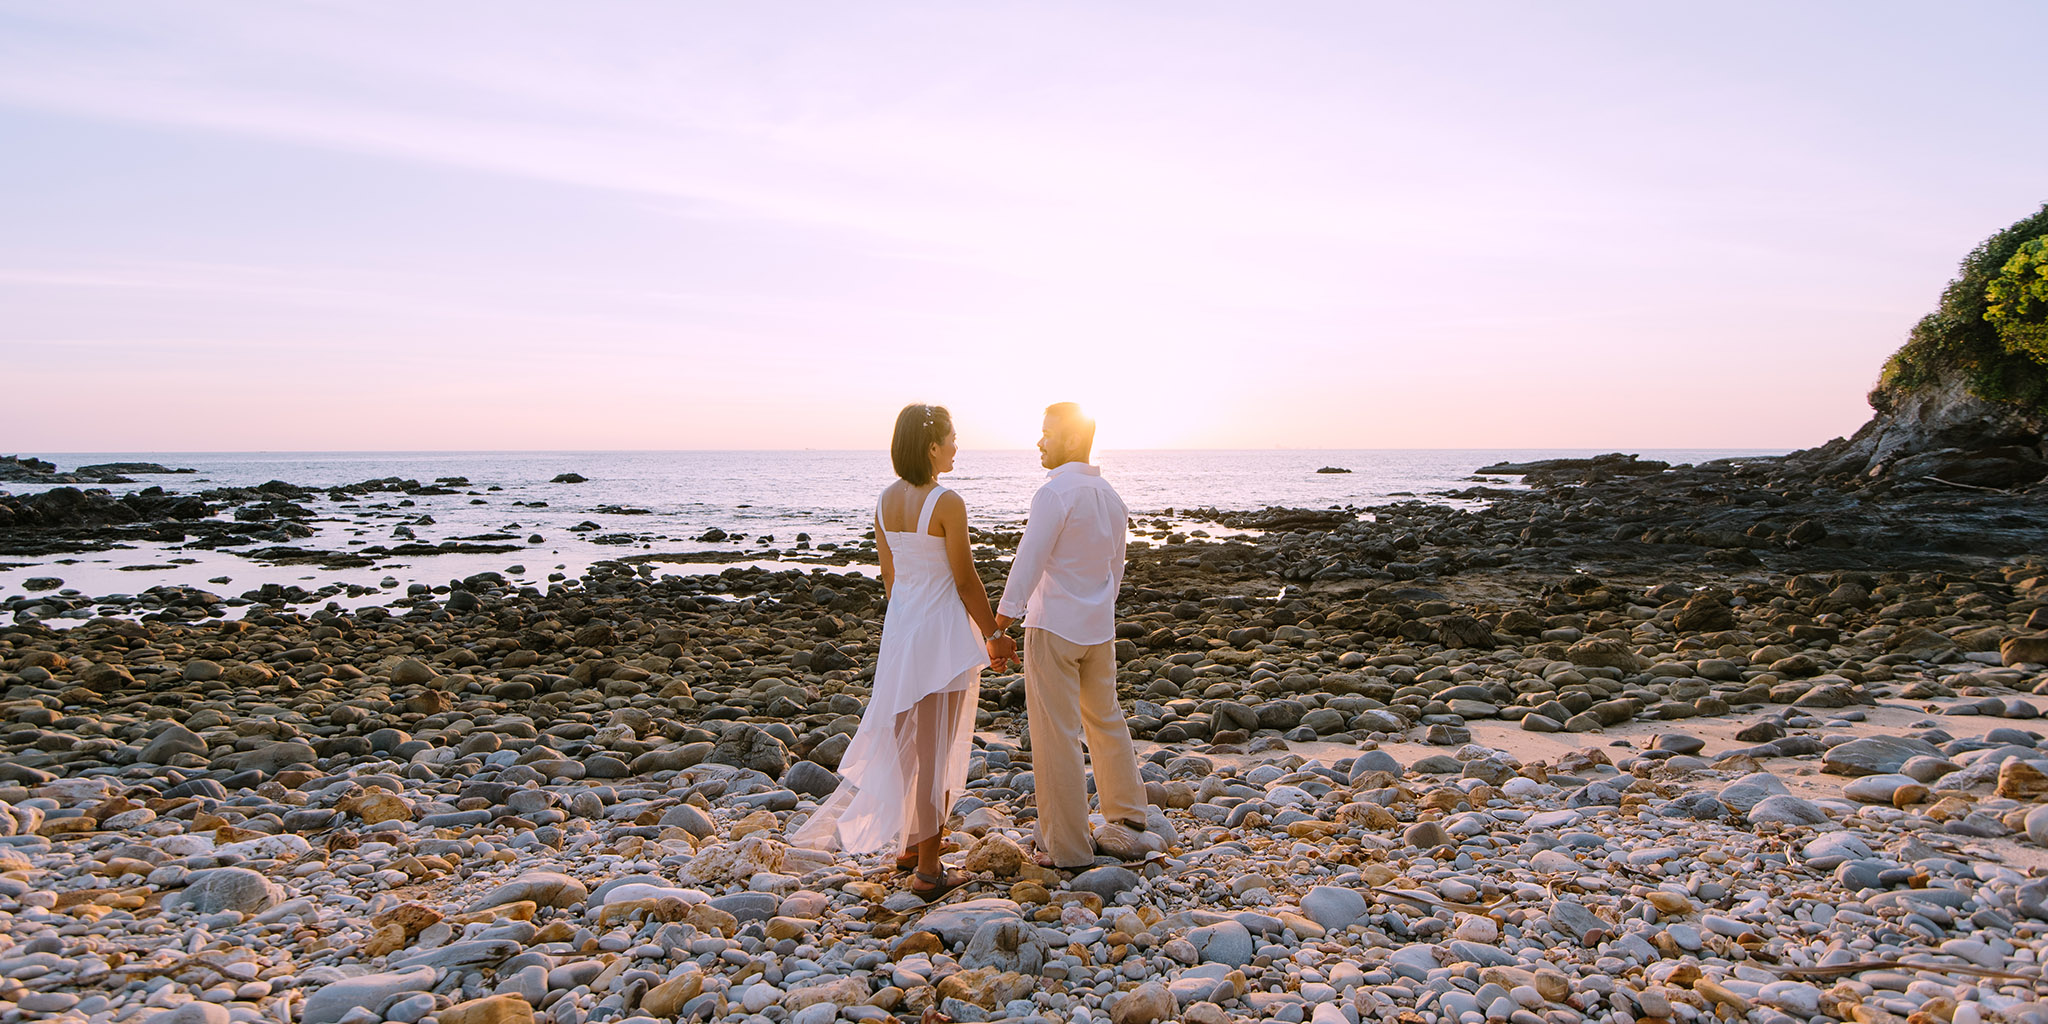 ช่างภาพกระบี่, ช่างภาพเกาะลันตา, Koh Lanta photographer, Koh Lanta photography, Krabi wedding photographer, Krabi wedding photography, Krabi photographer, Krabi photography